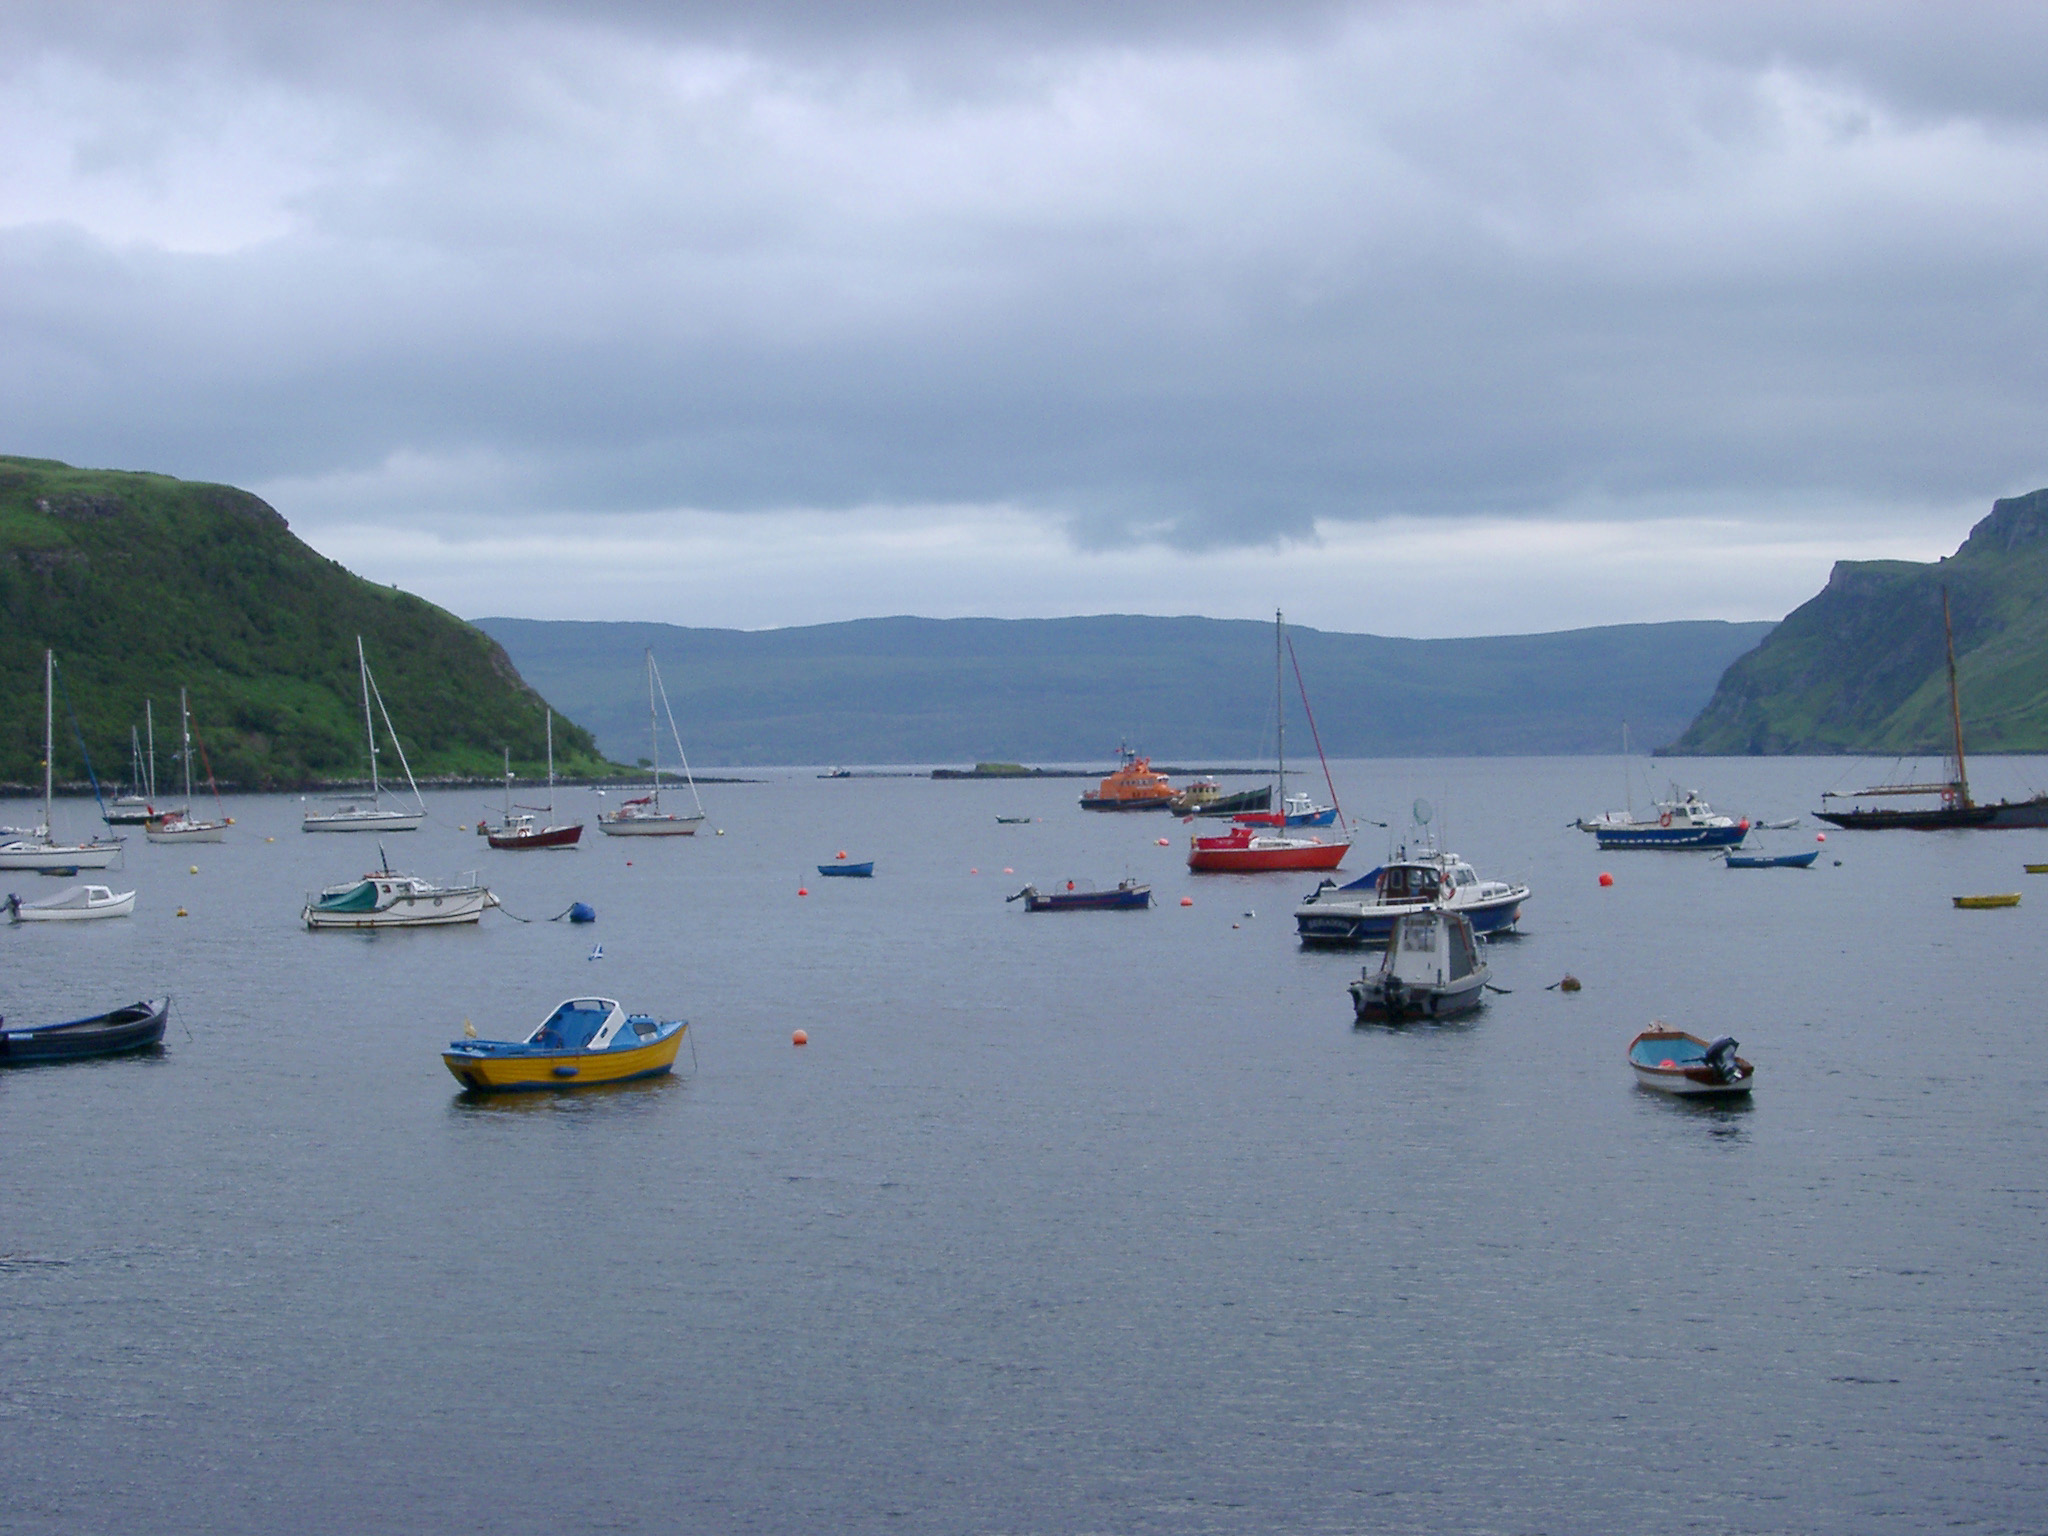 fishing and pleasure boats in the harbour at portree, hebrides scotland